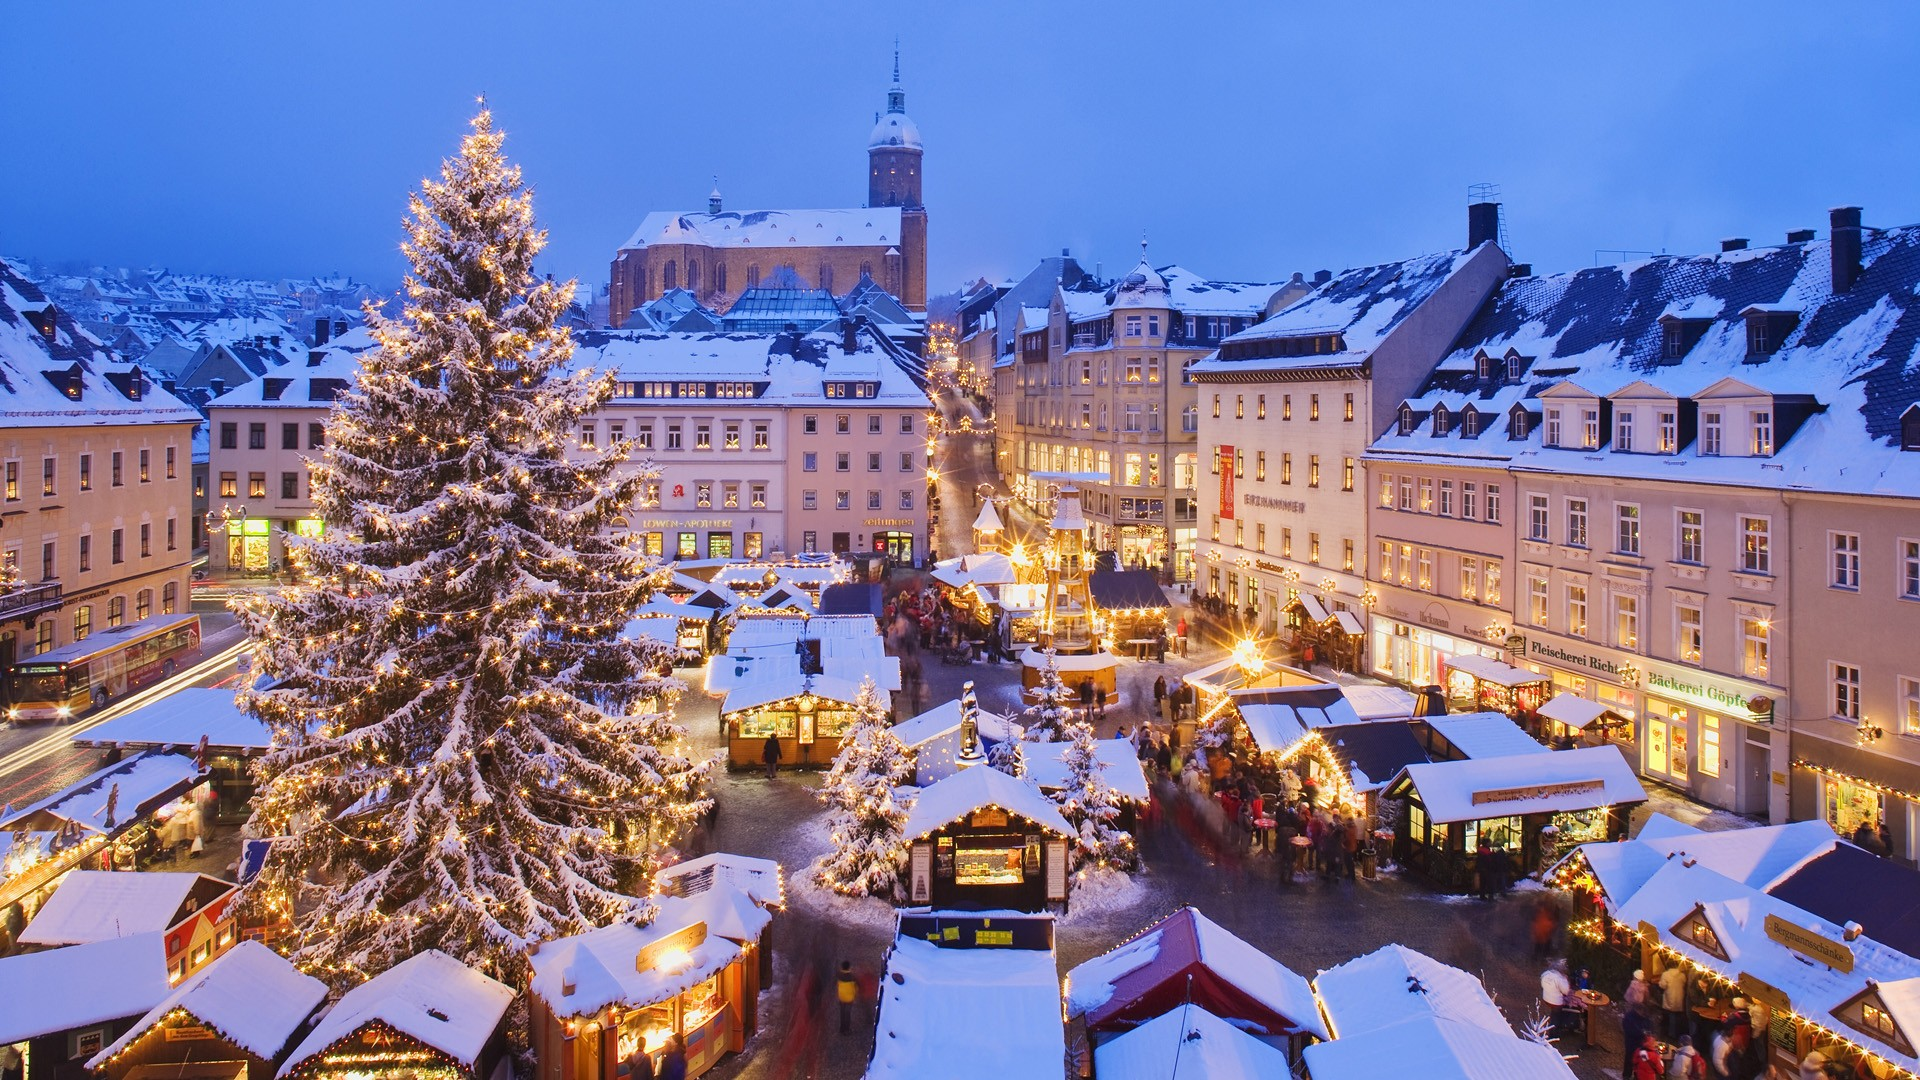 wallpaper germany christmas tree wallpapers55com   Best Wallpapers 1920x1080